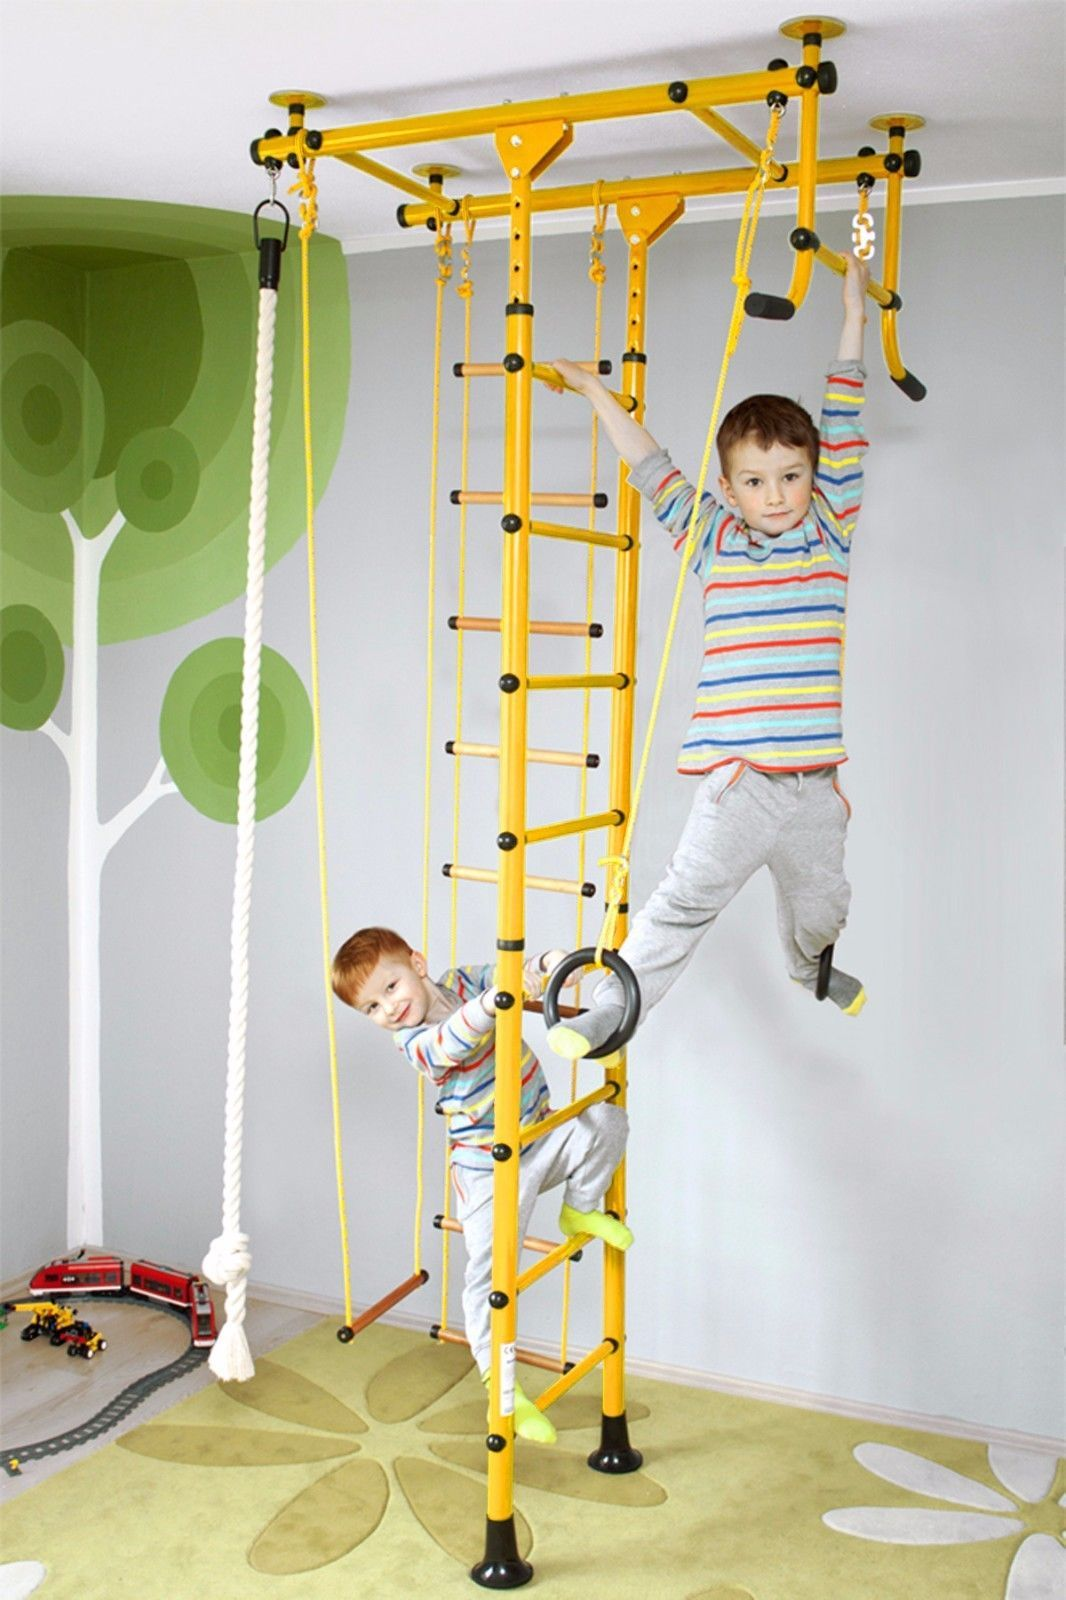 Indoor wall bars climbing frame kids sports device licensed for kg